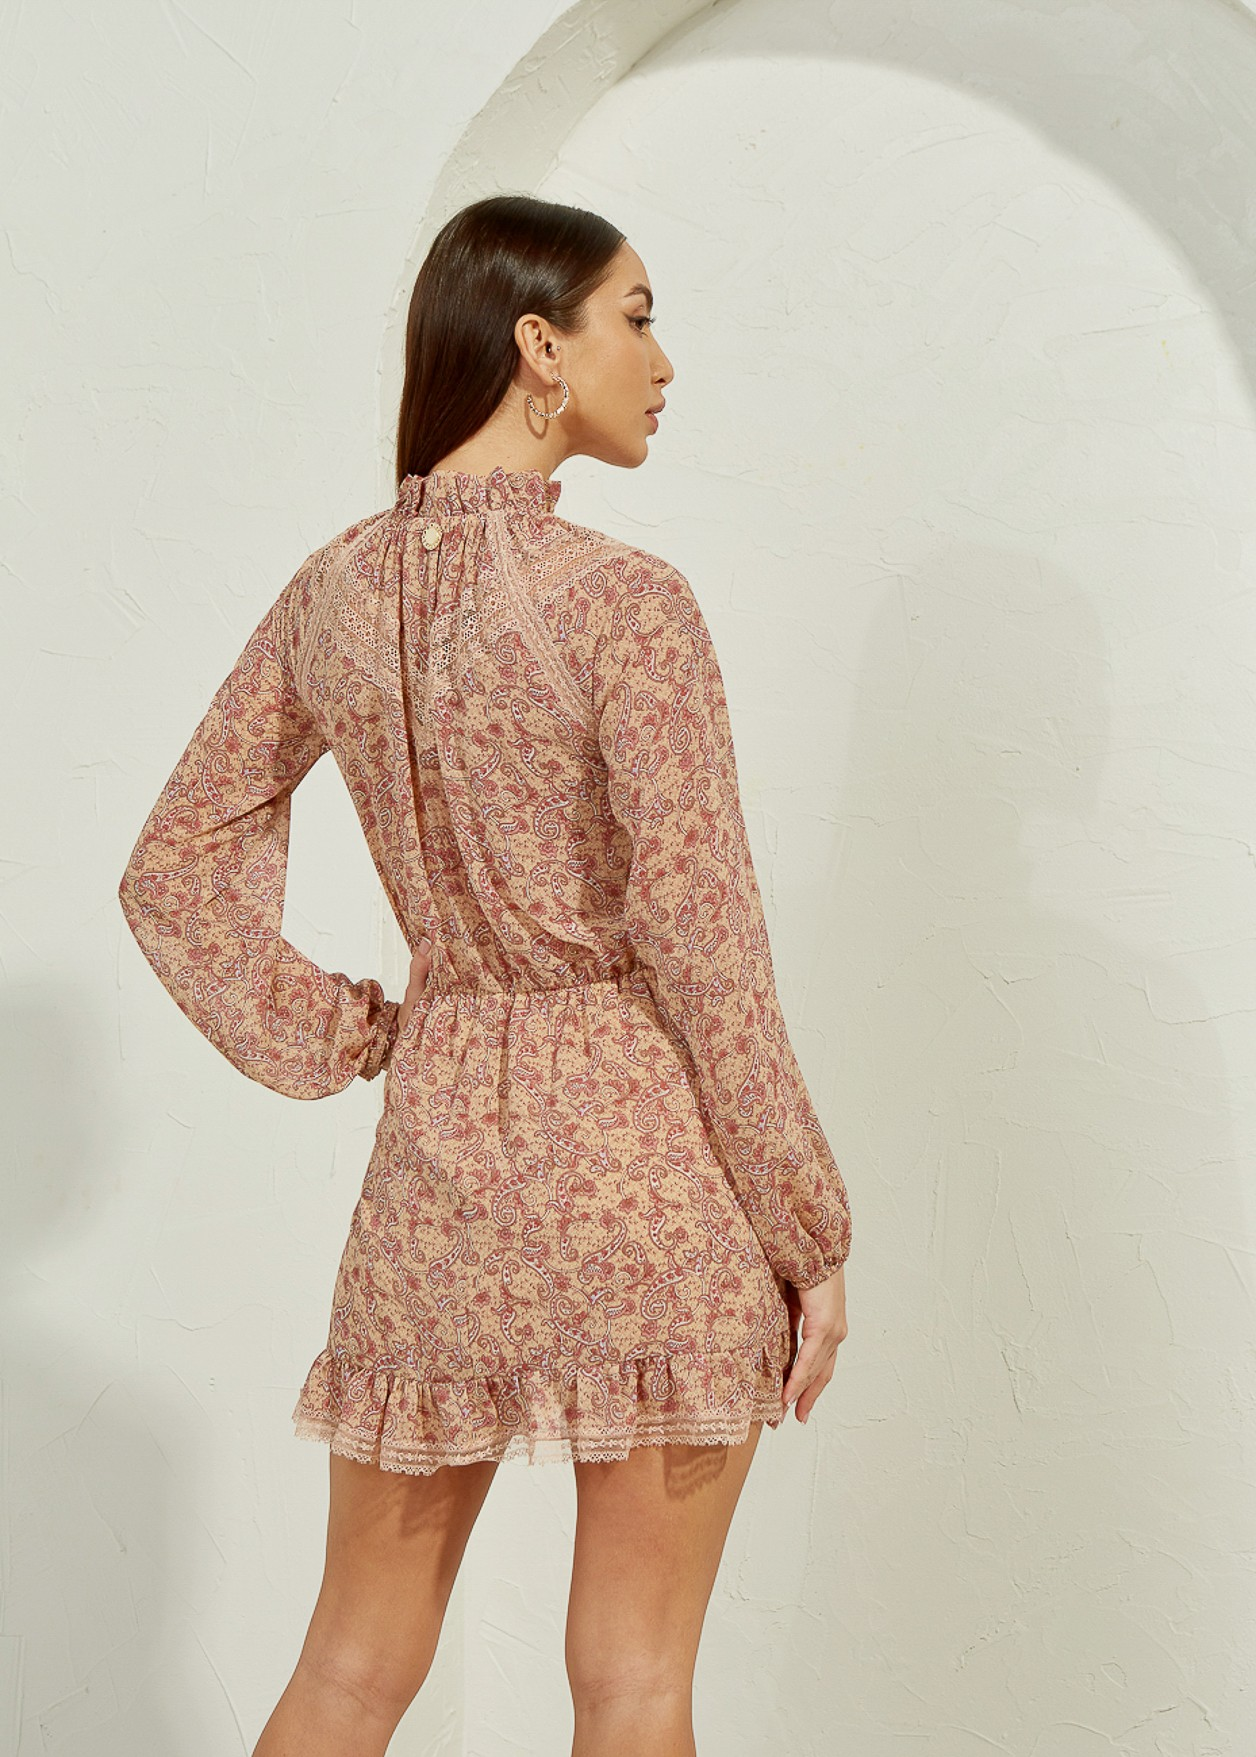 Dress with paisley print and lace detail